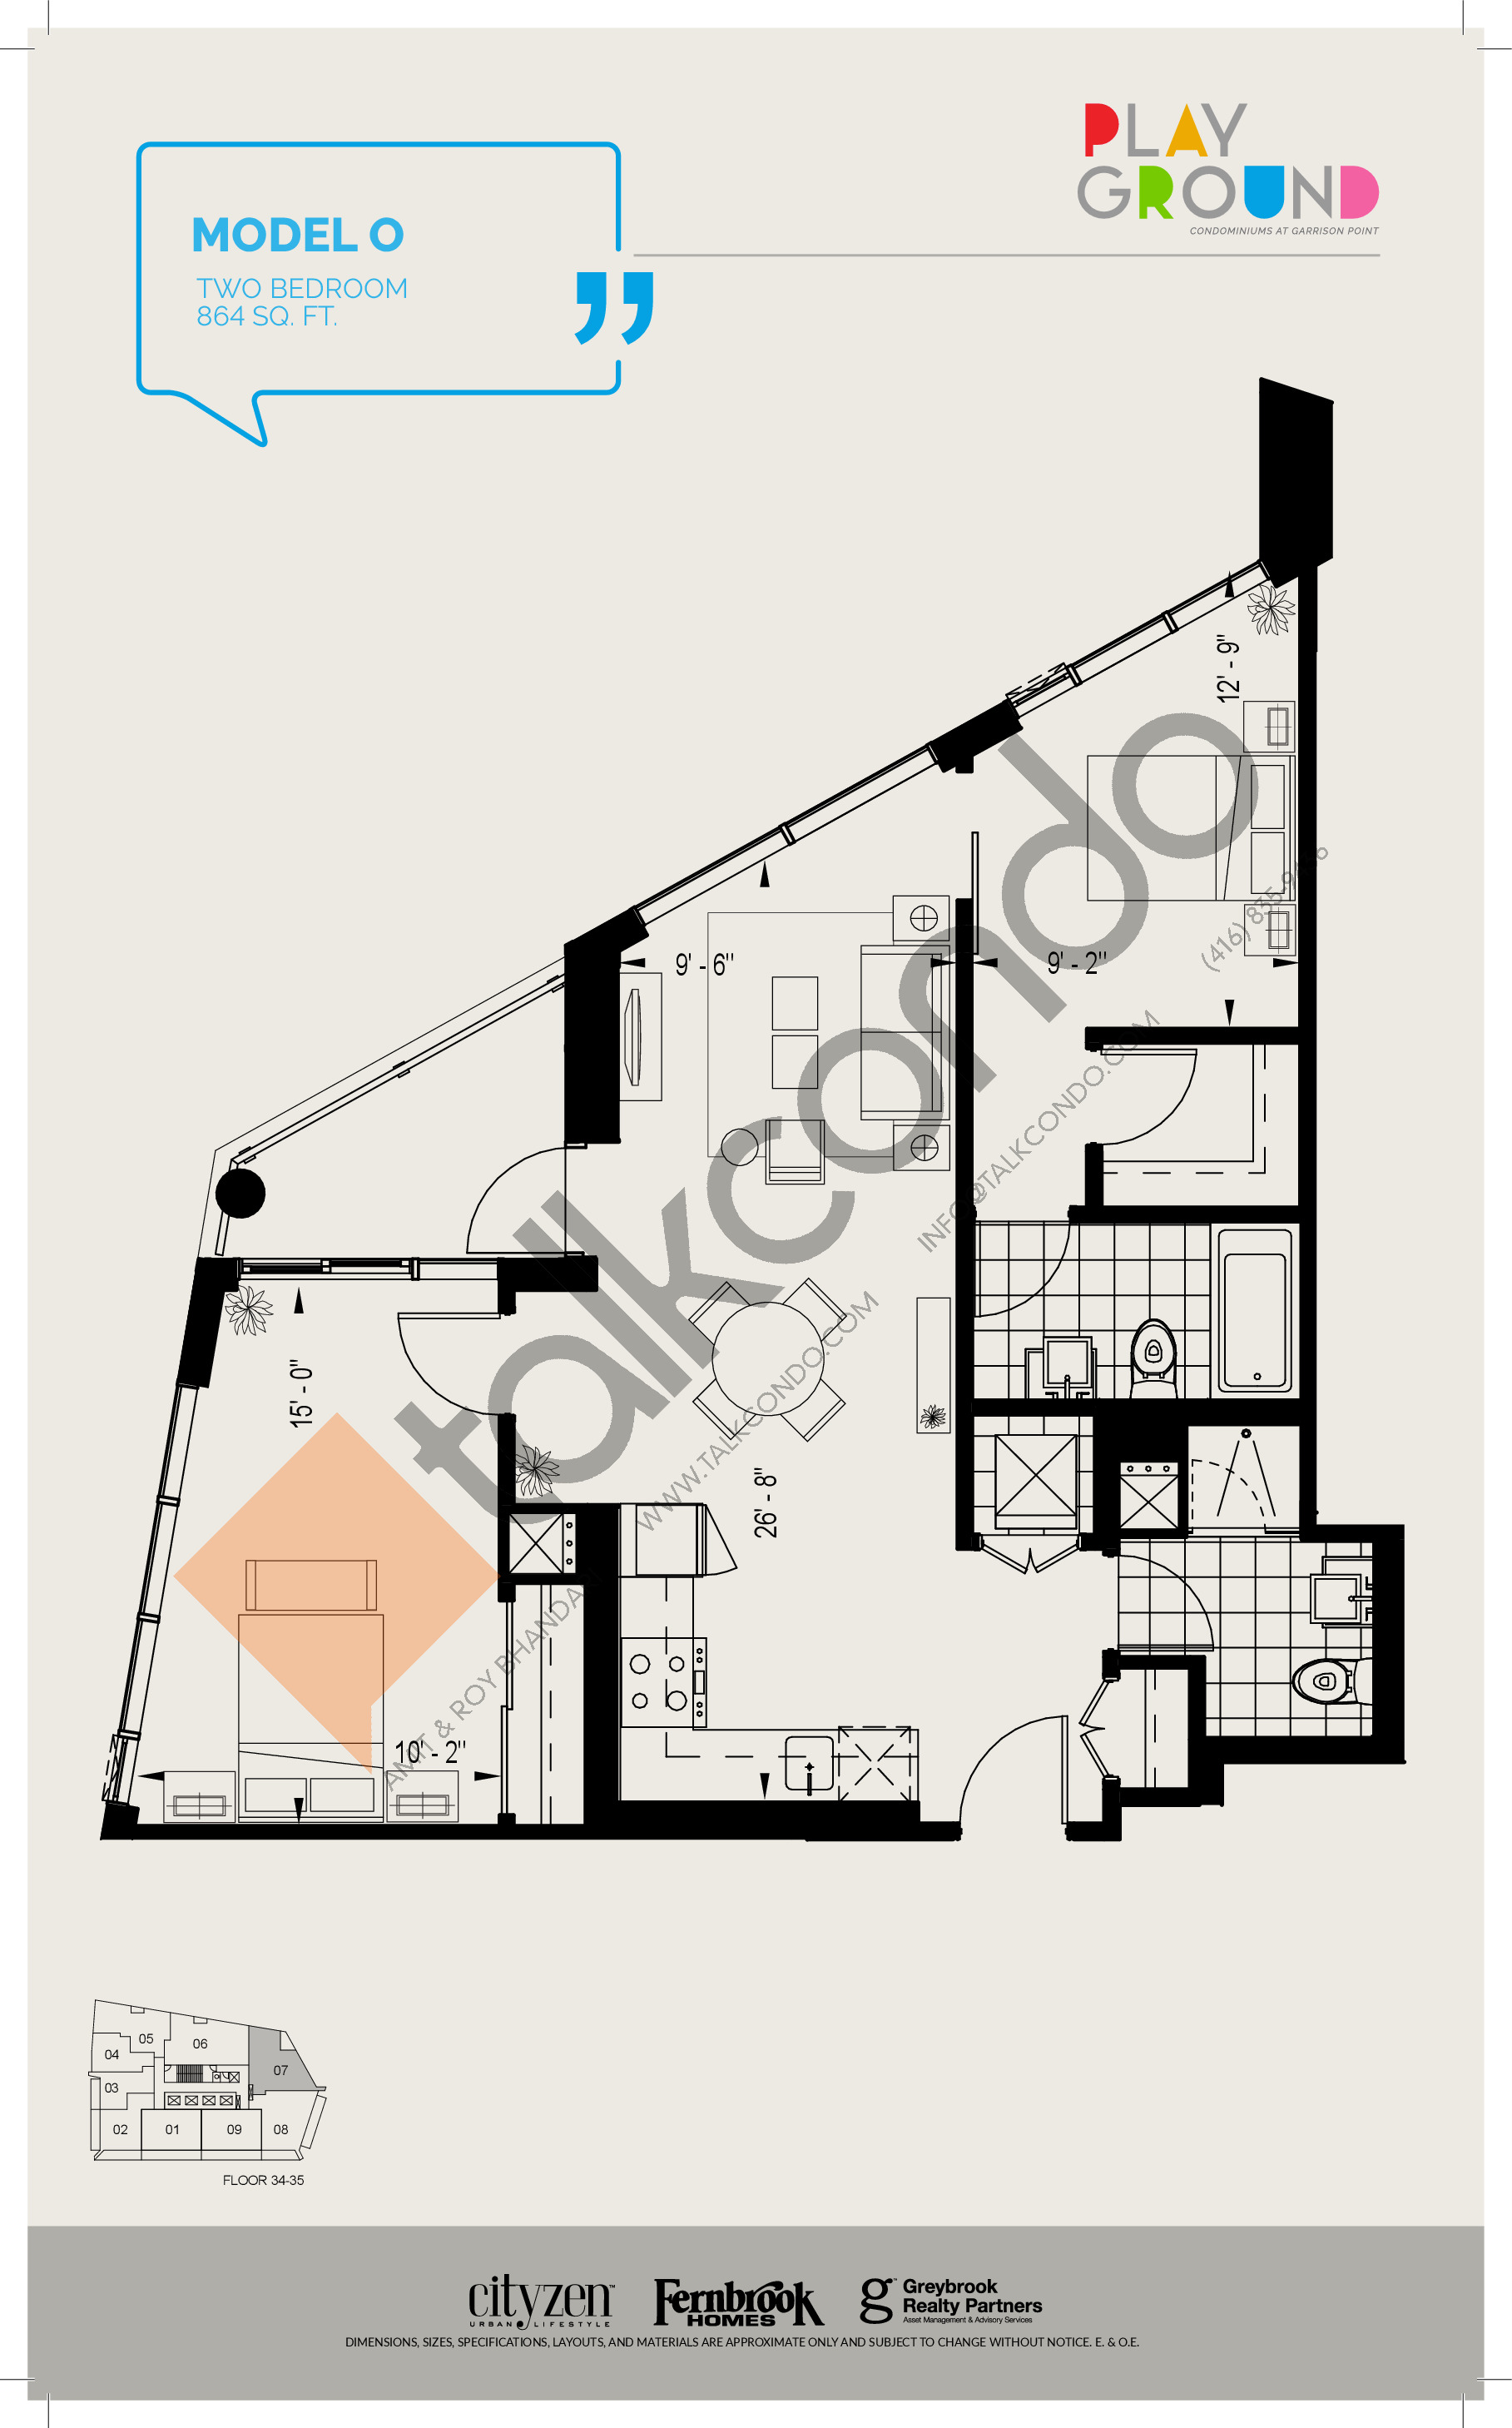 Model O Floor Plan at Playground Condos at Garrison Point - 864 sq.ft